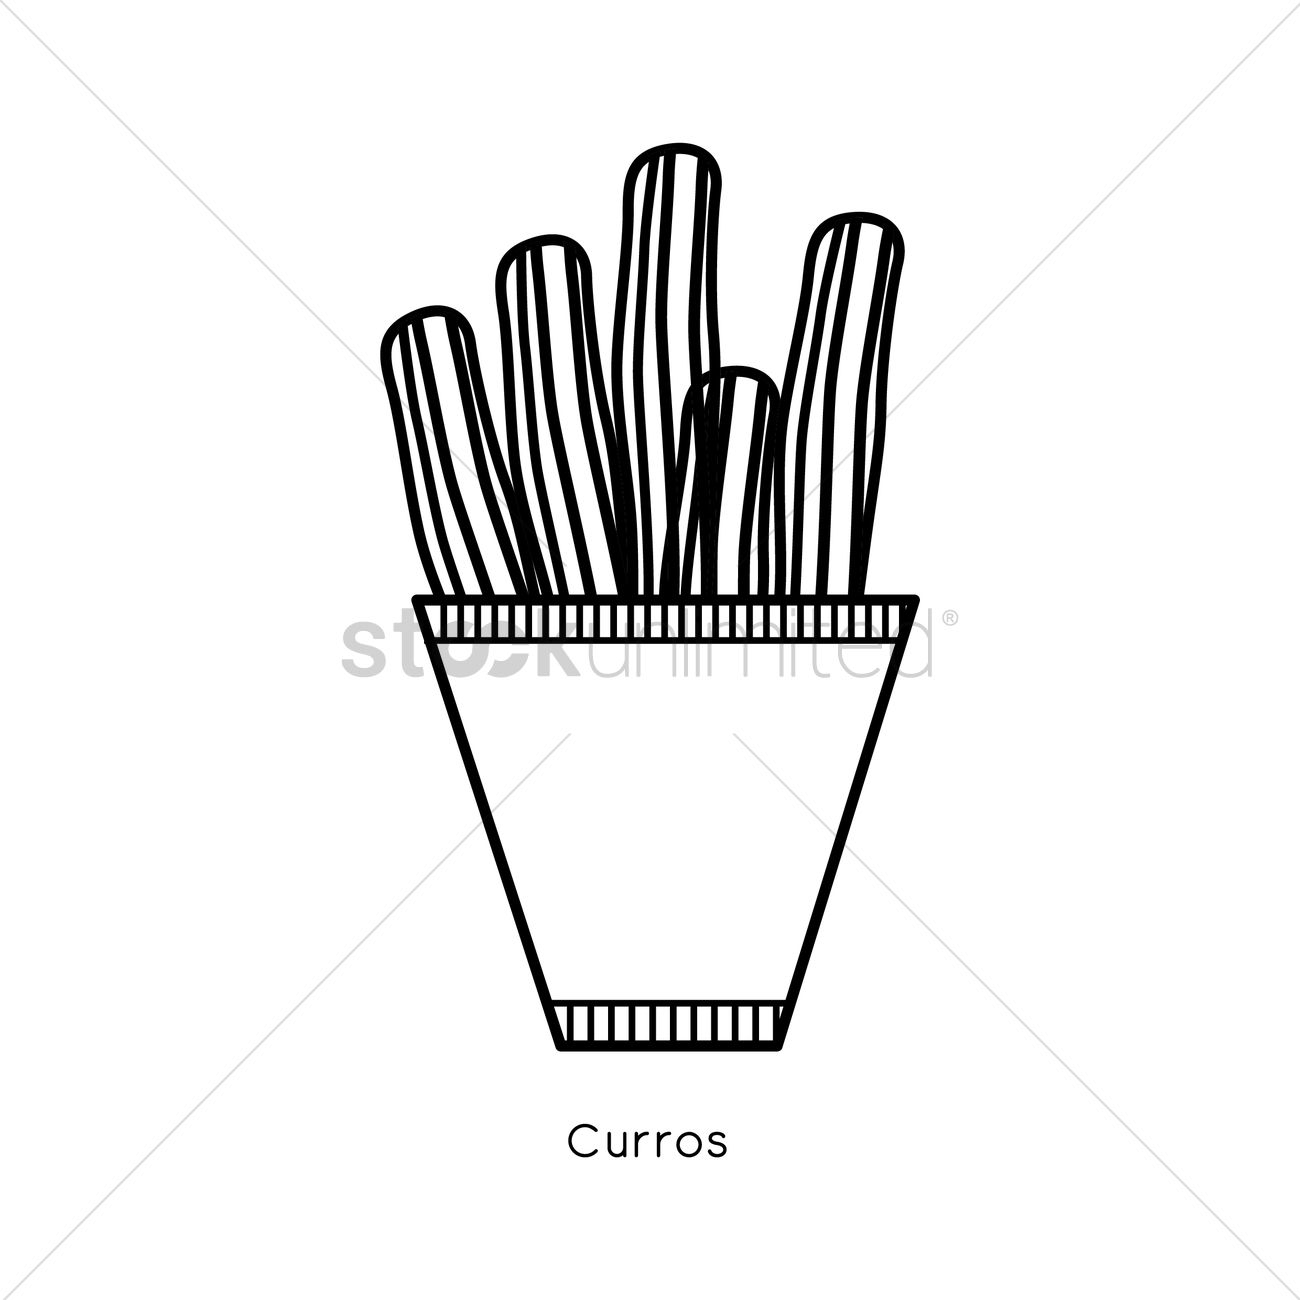 445574956857764539 furthermore Conjunto Pasteles 11939449 moreover Churros Clipart together with Chef Hat Outline in addition Stock Image Cupcake Set Black White Contour Drawing Image35716441. on cute cartoon pastry